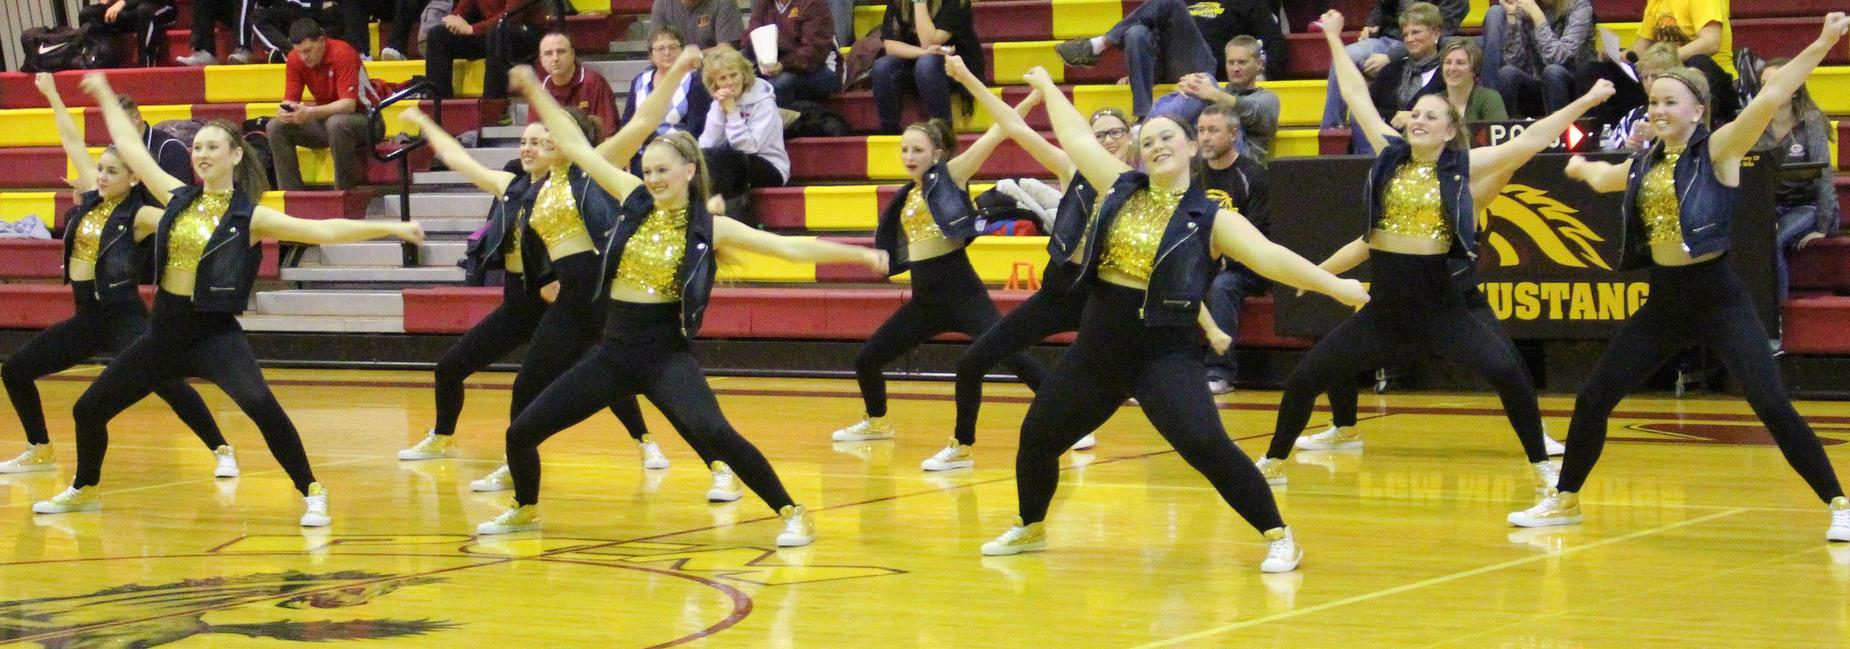 High Dance Team performing